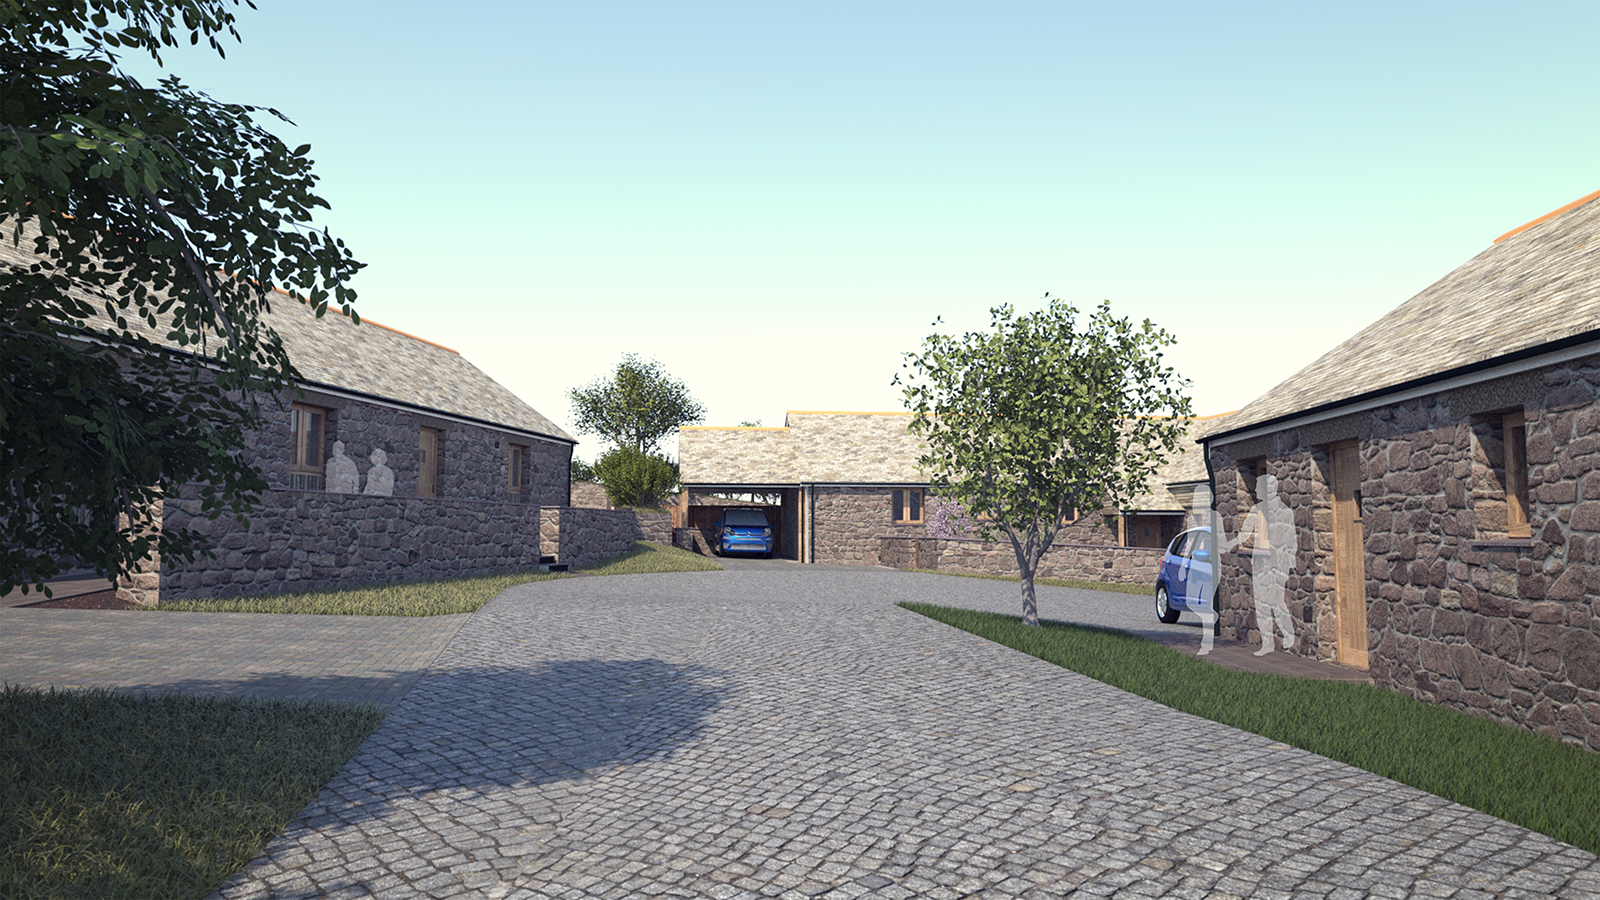 Six new homes planning architecture landscape - Location de vacances cornwall laurence associates ...